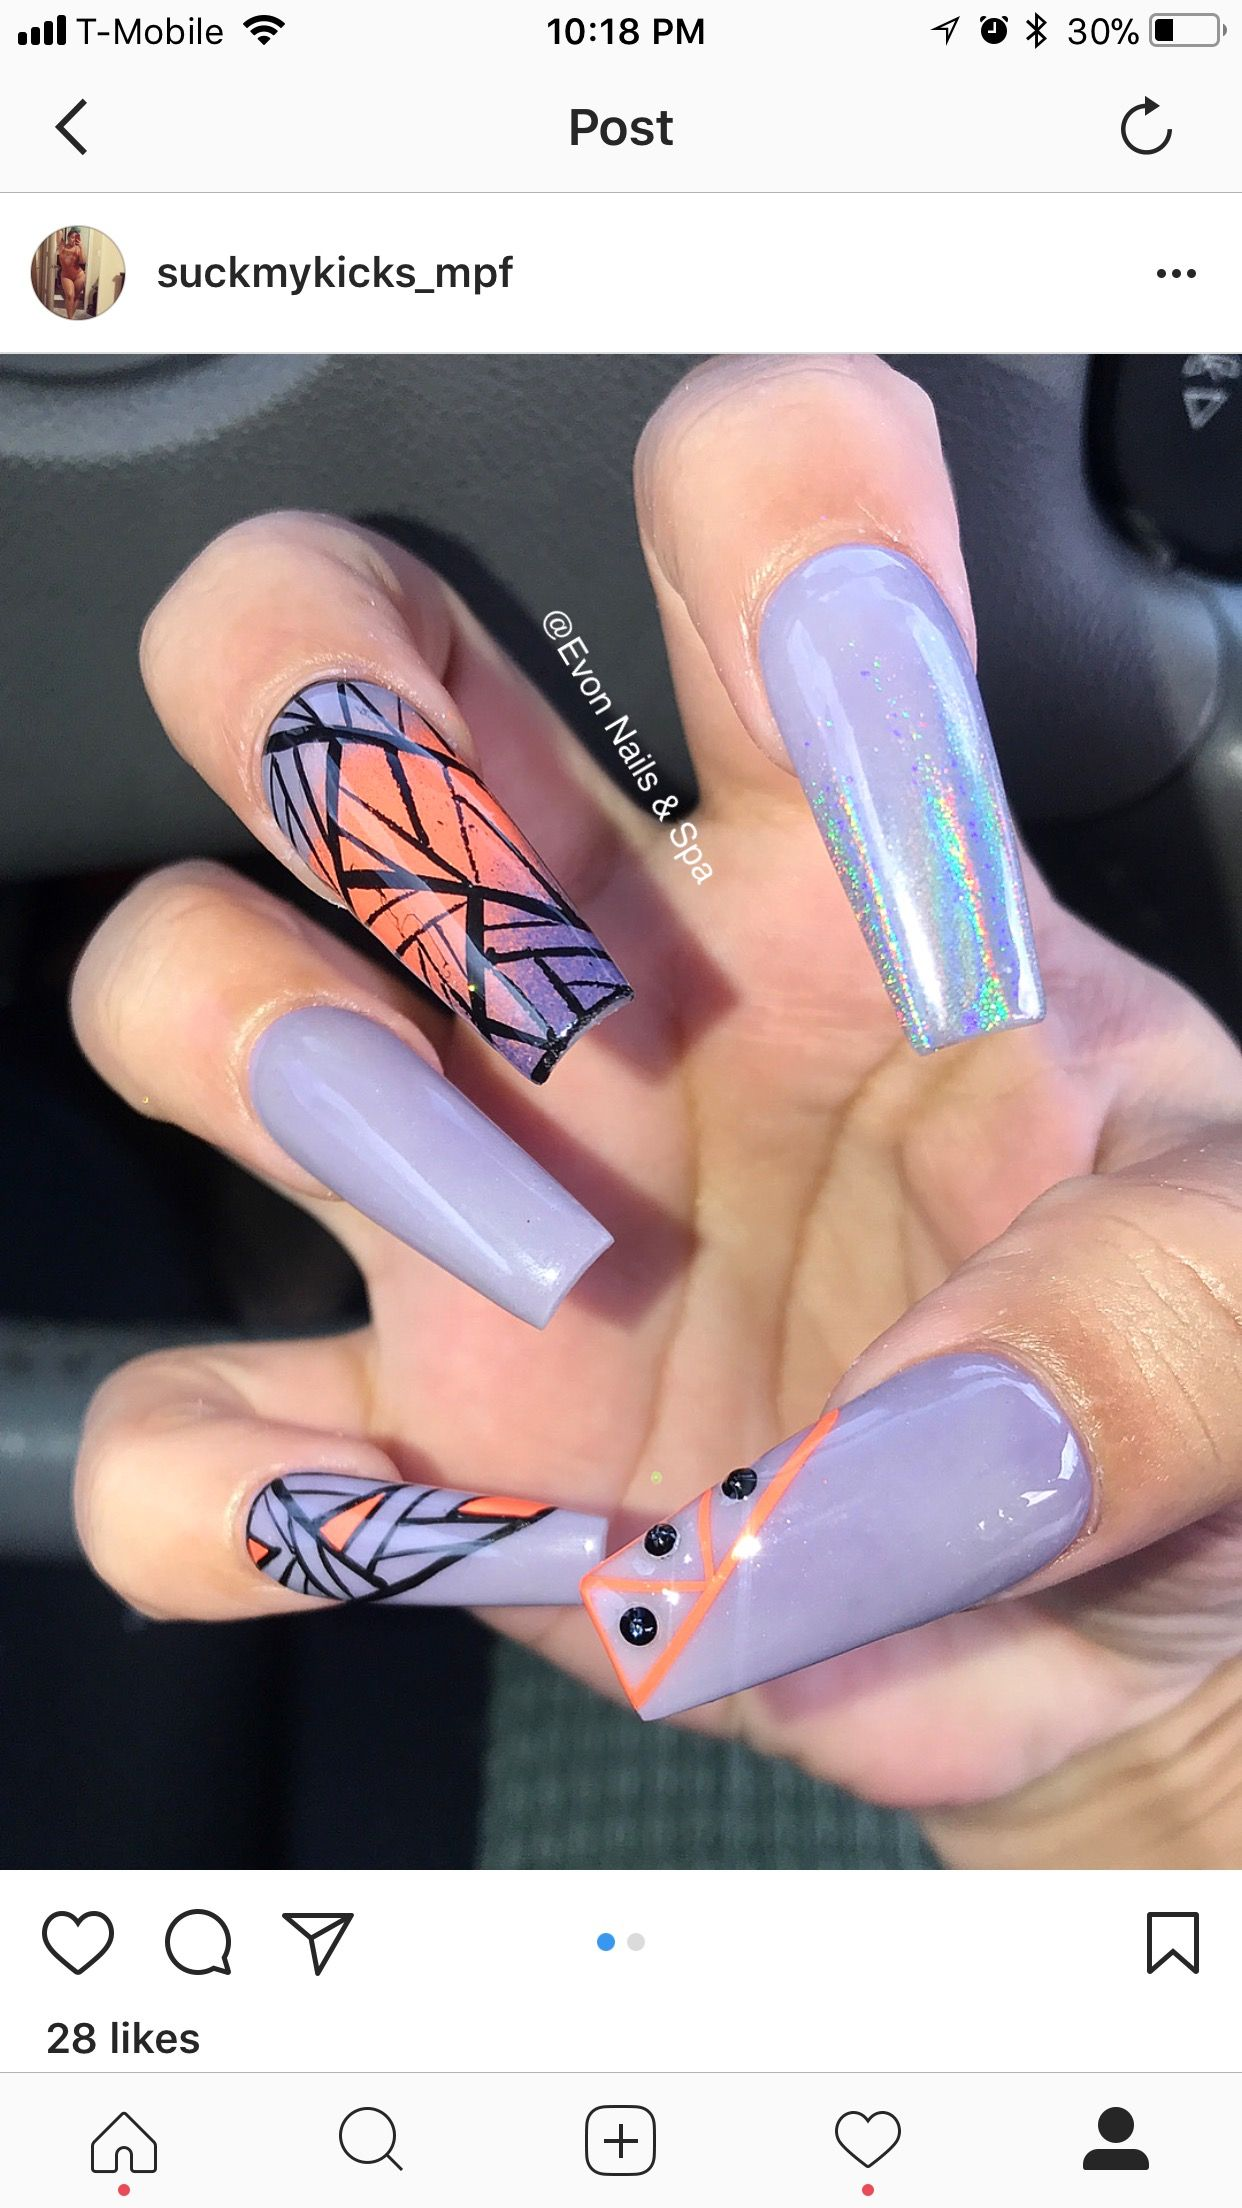 Pin by Evon Nails & Spa on Evon nails & spa . Instagram @ evon nails ...